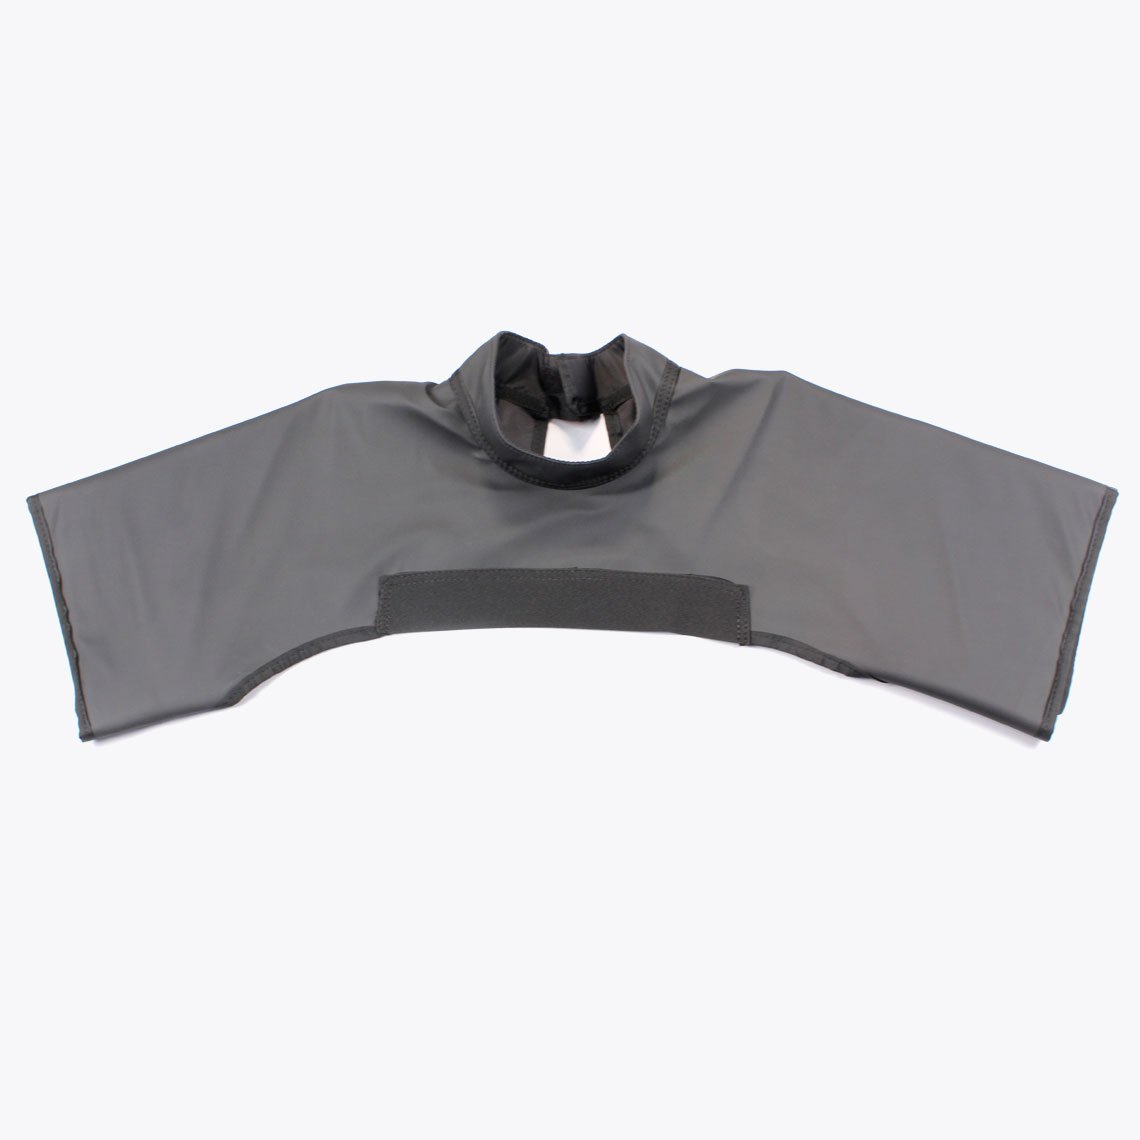 Revolution Attached Thyroid Sleeves – REV-SLV